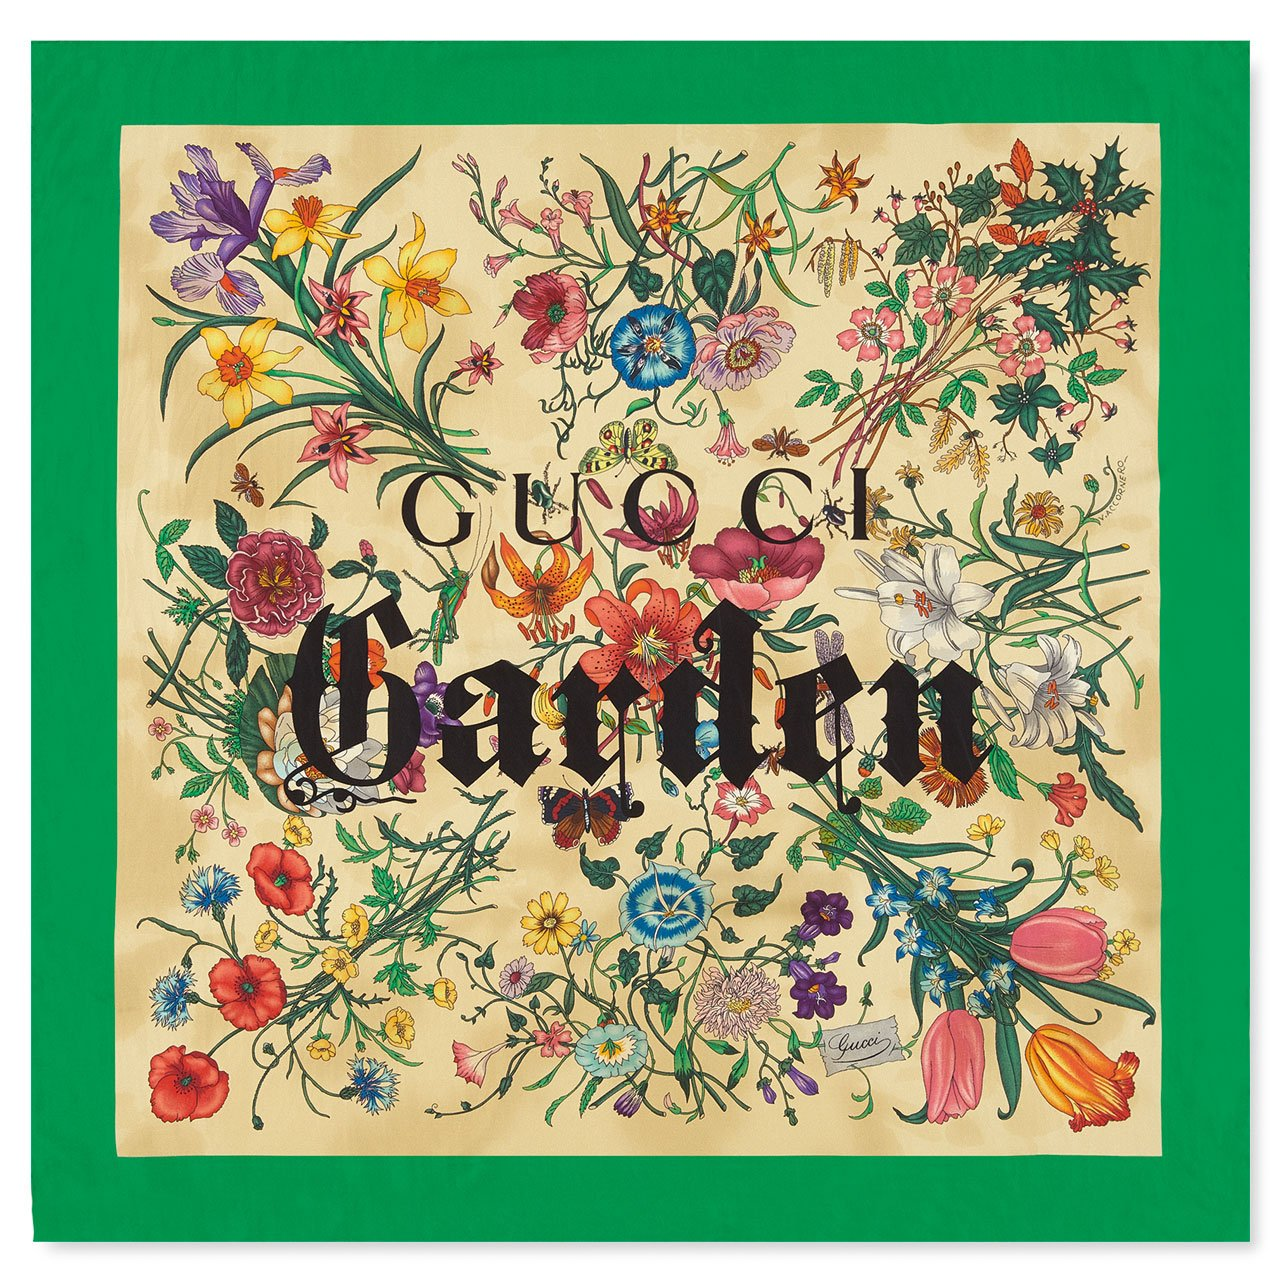 Silk handkerchief from the Gucci Garden series. Photo © Gucci.